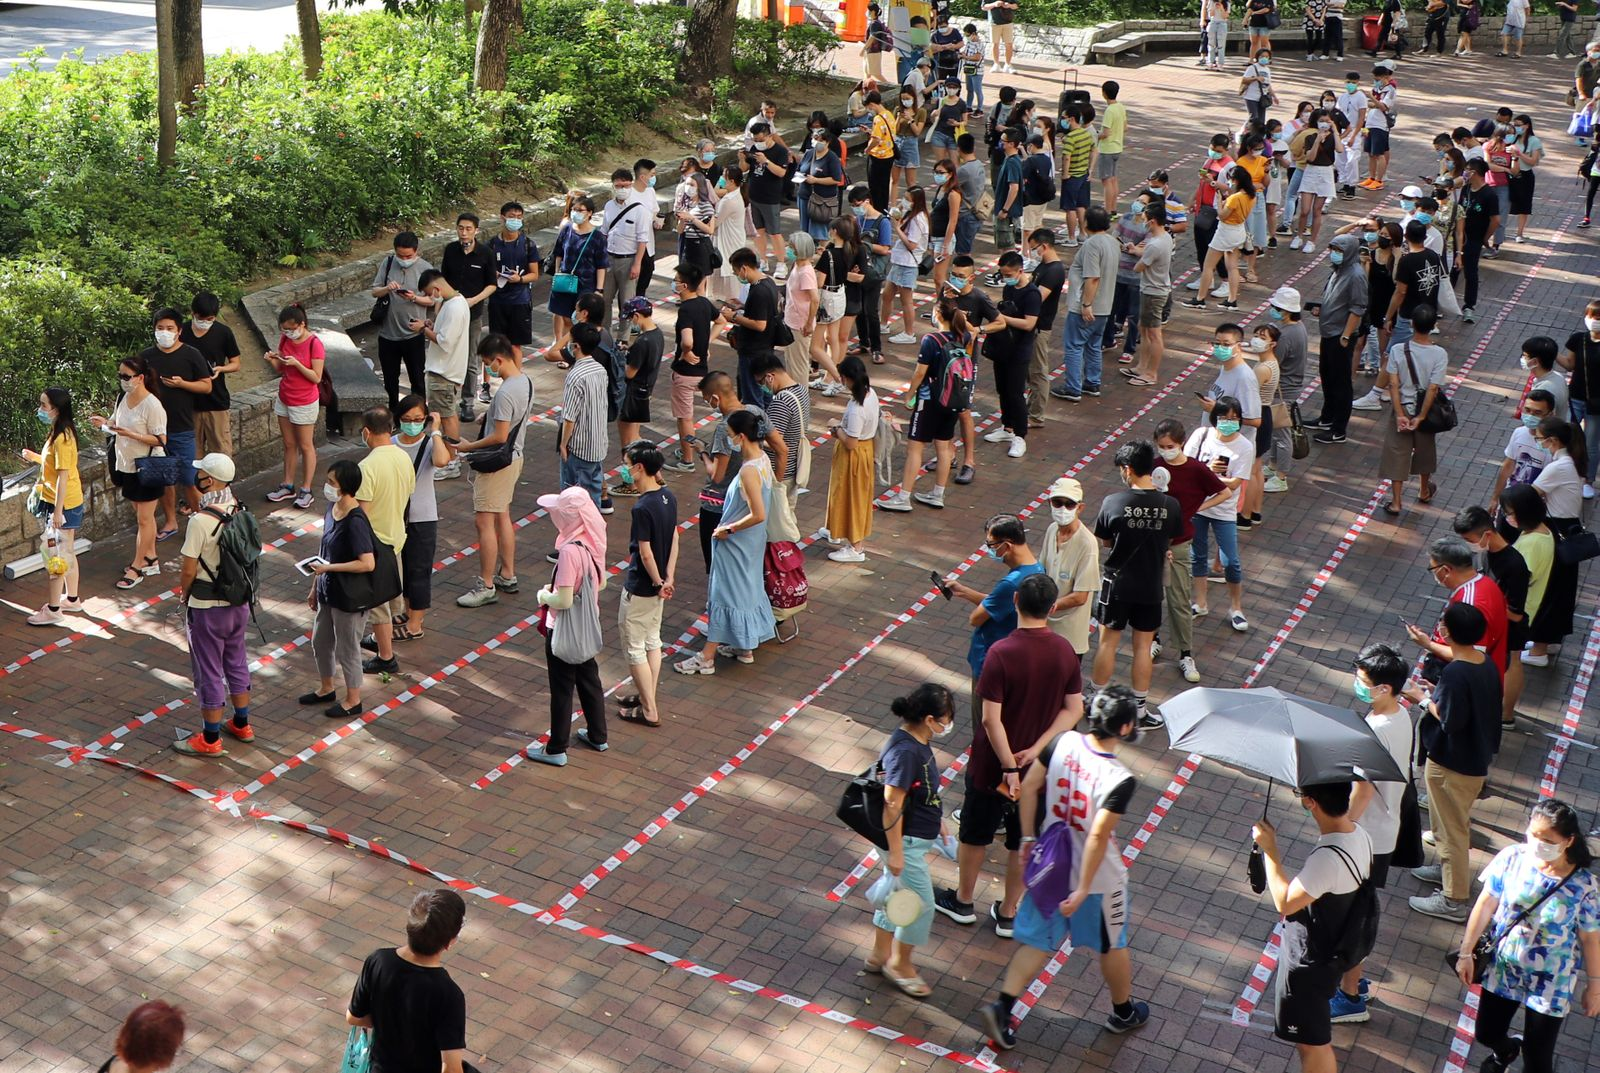 Voters queue up to vote during primary elections aimed for selecting democracy candidates, in Hong Kong